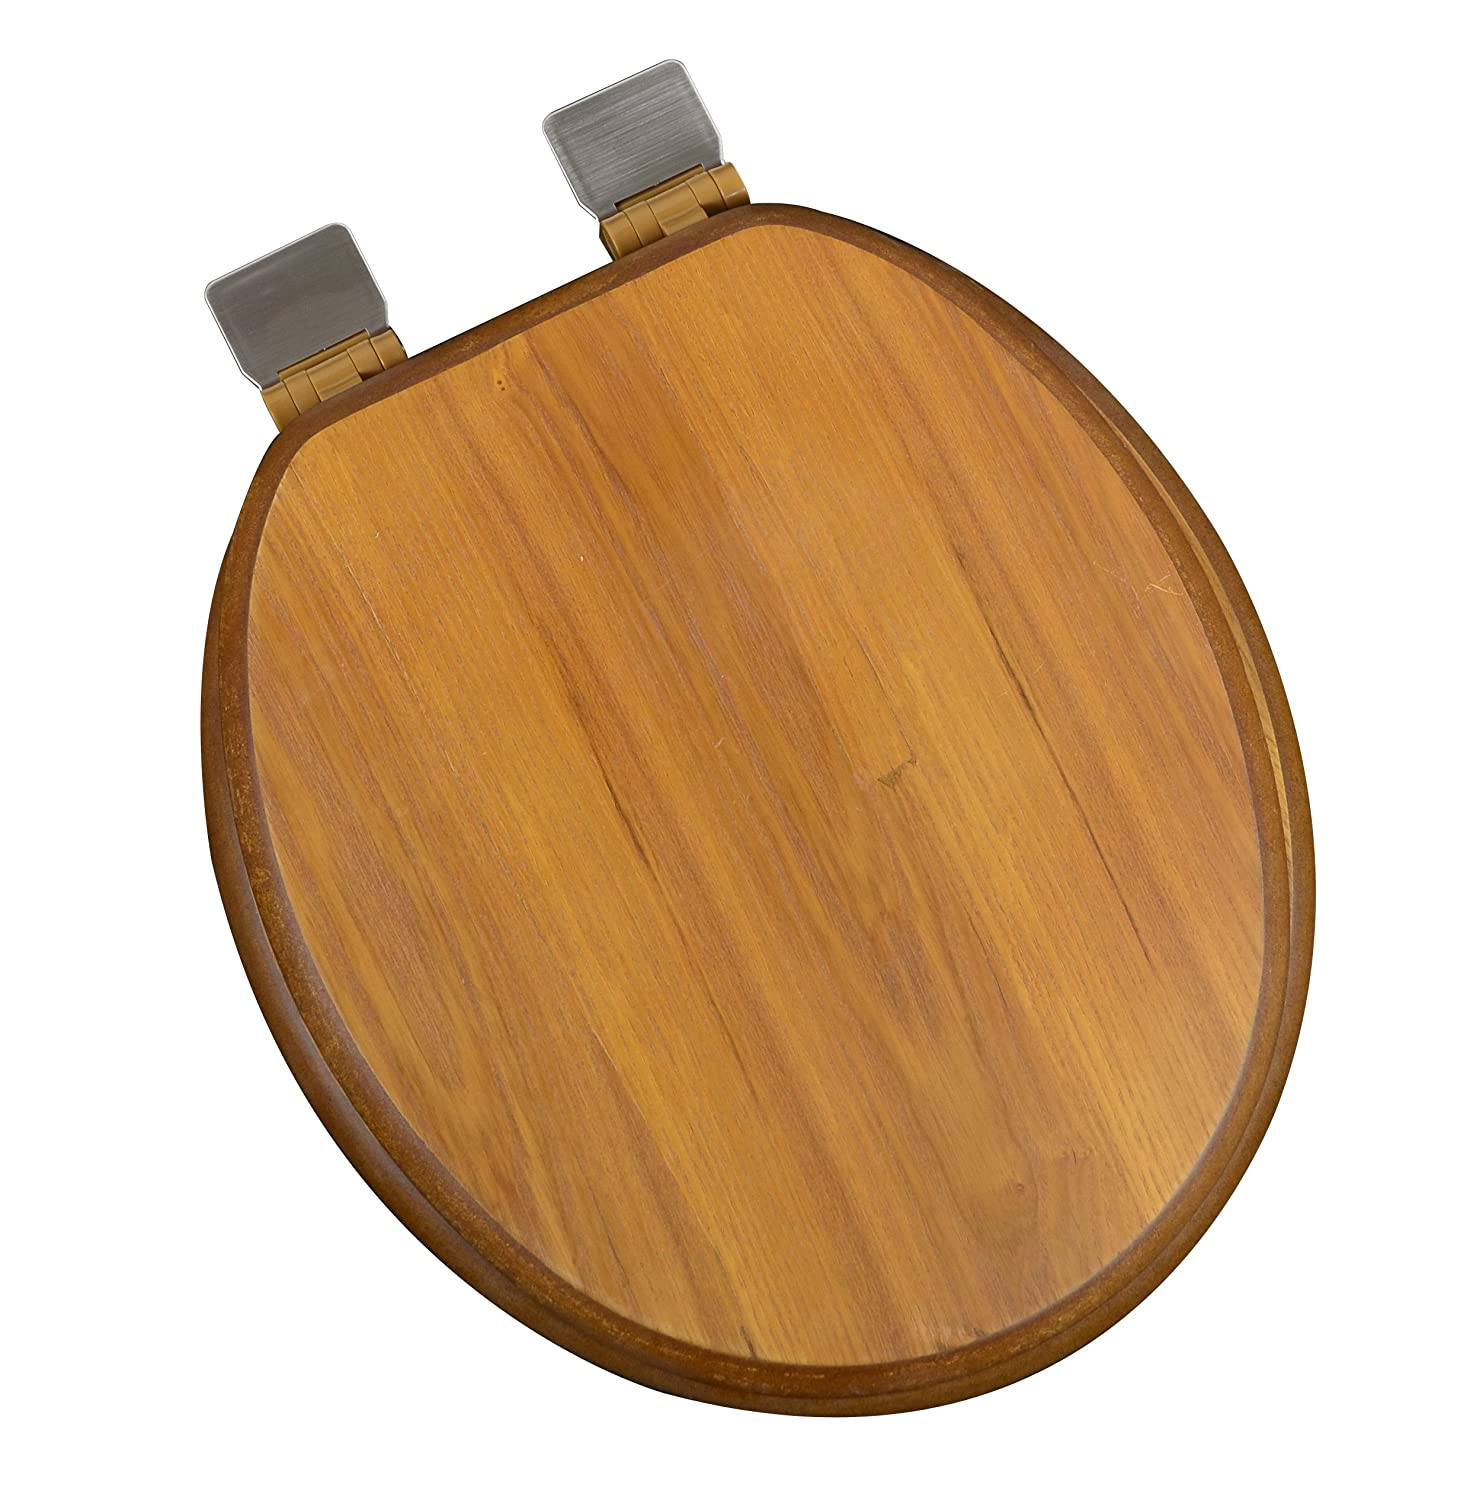 Pleasing Bath Decor 5F1R1 17Bn Round Light Oak Toilet Seat With Adjustable Brushed Nickel Hinge And Decorative Finish Forskolin Free Trial Chair Design Images Forskolin Free Trialorg